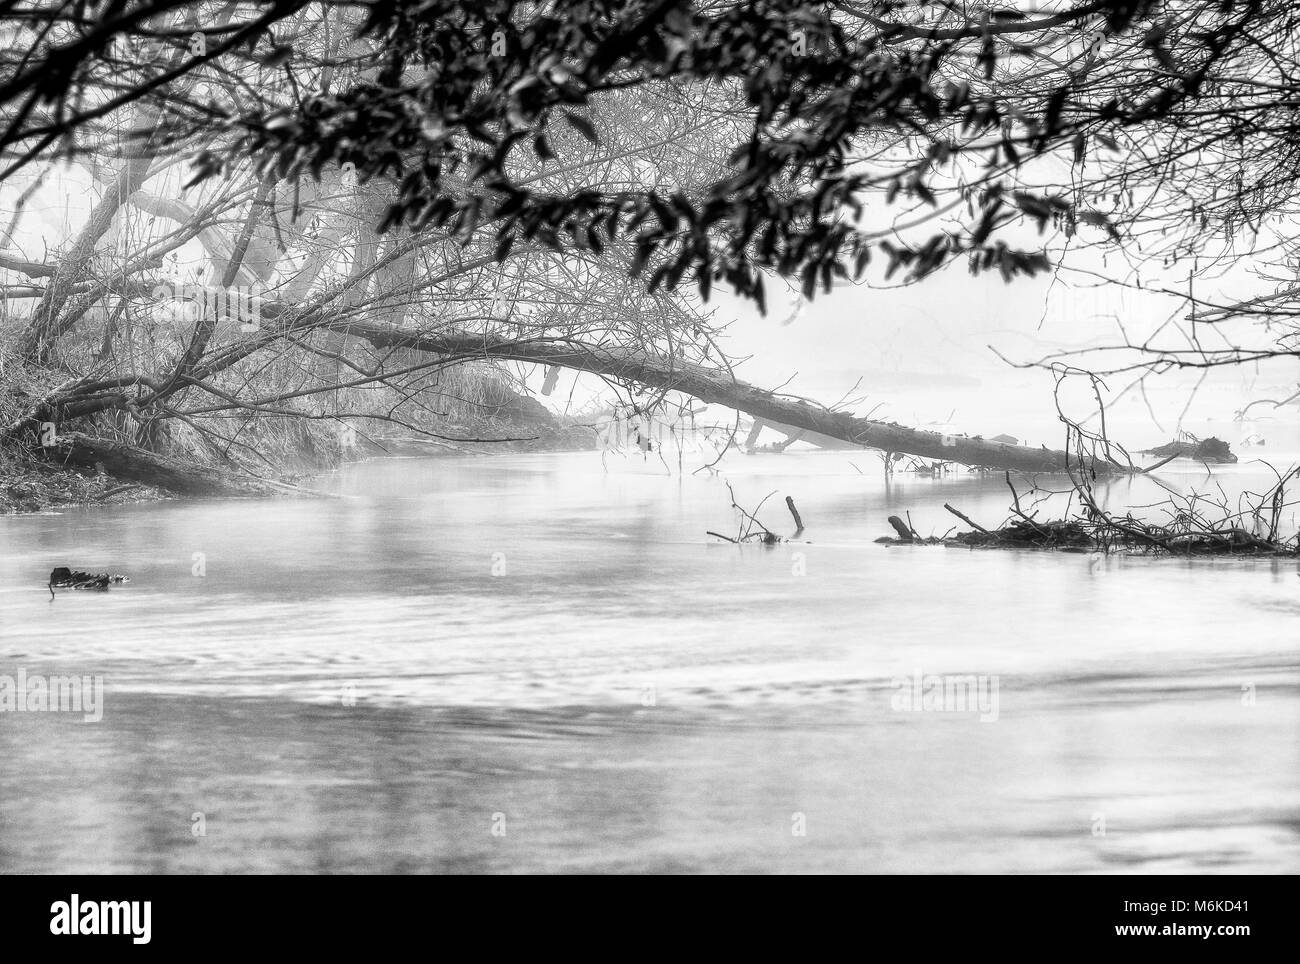 winter landscapes over the Ticino riverbanks - Stock Image